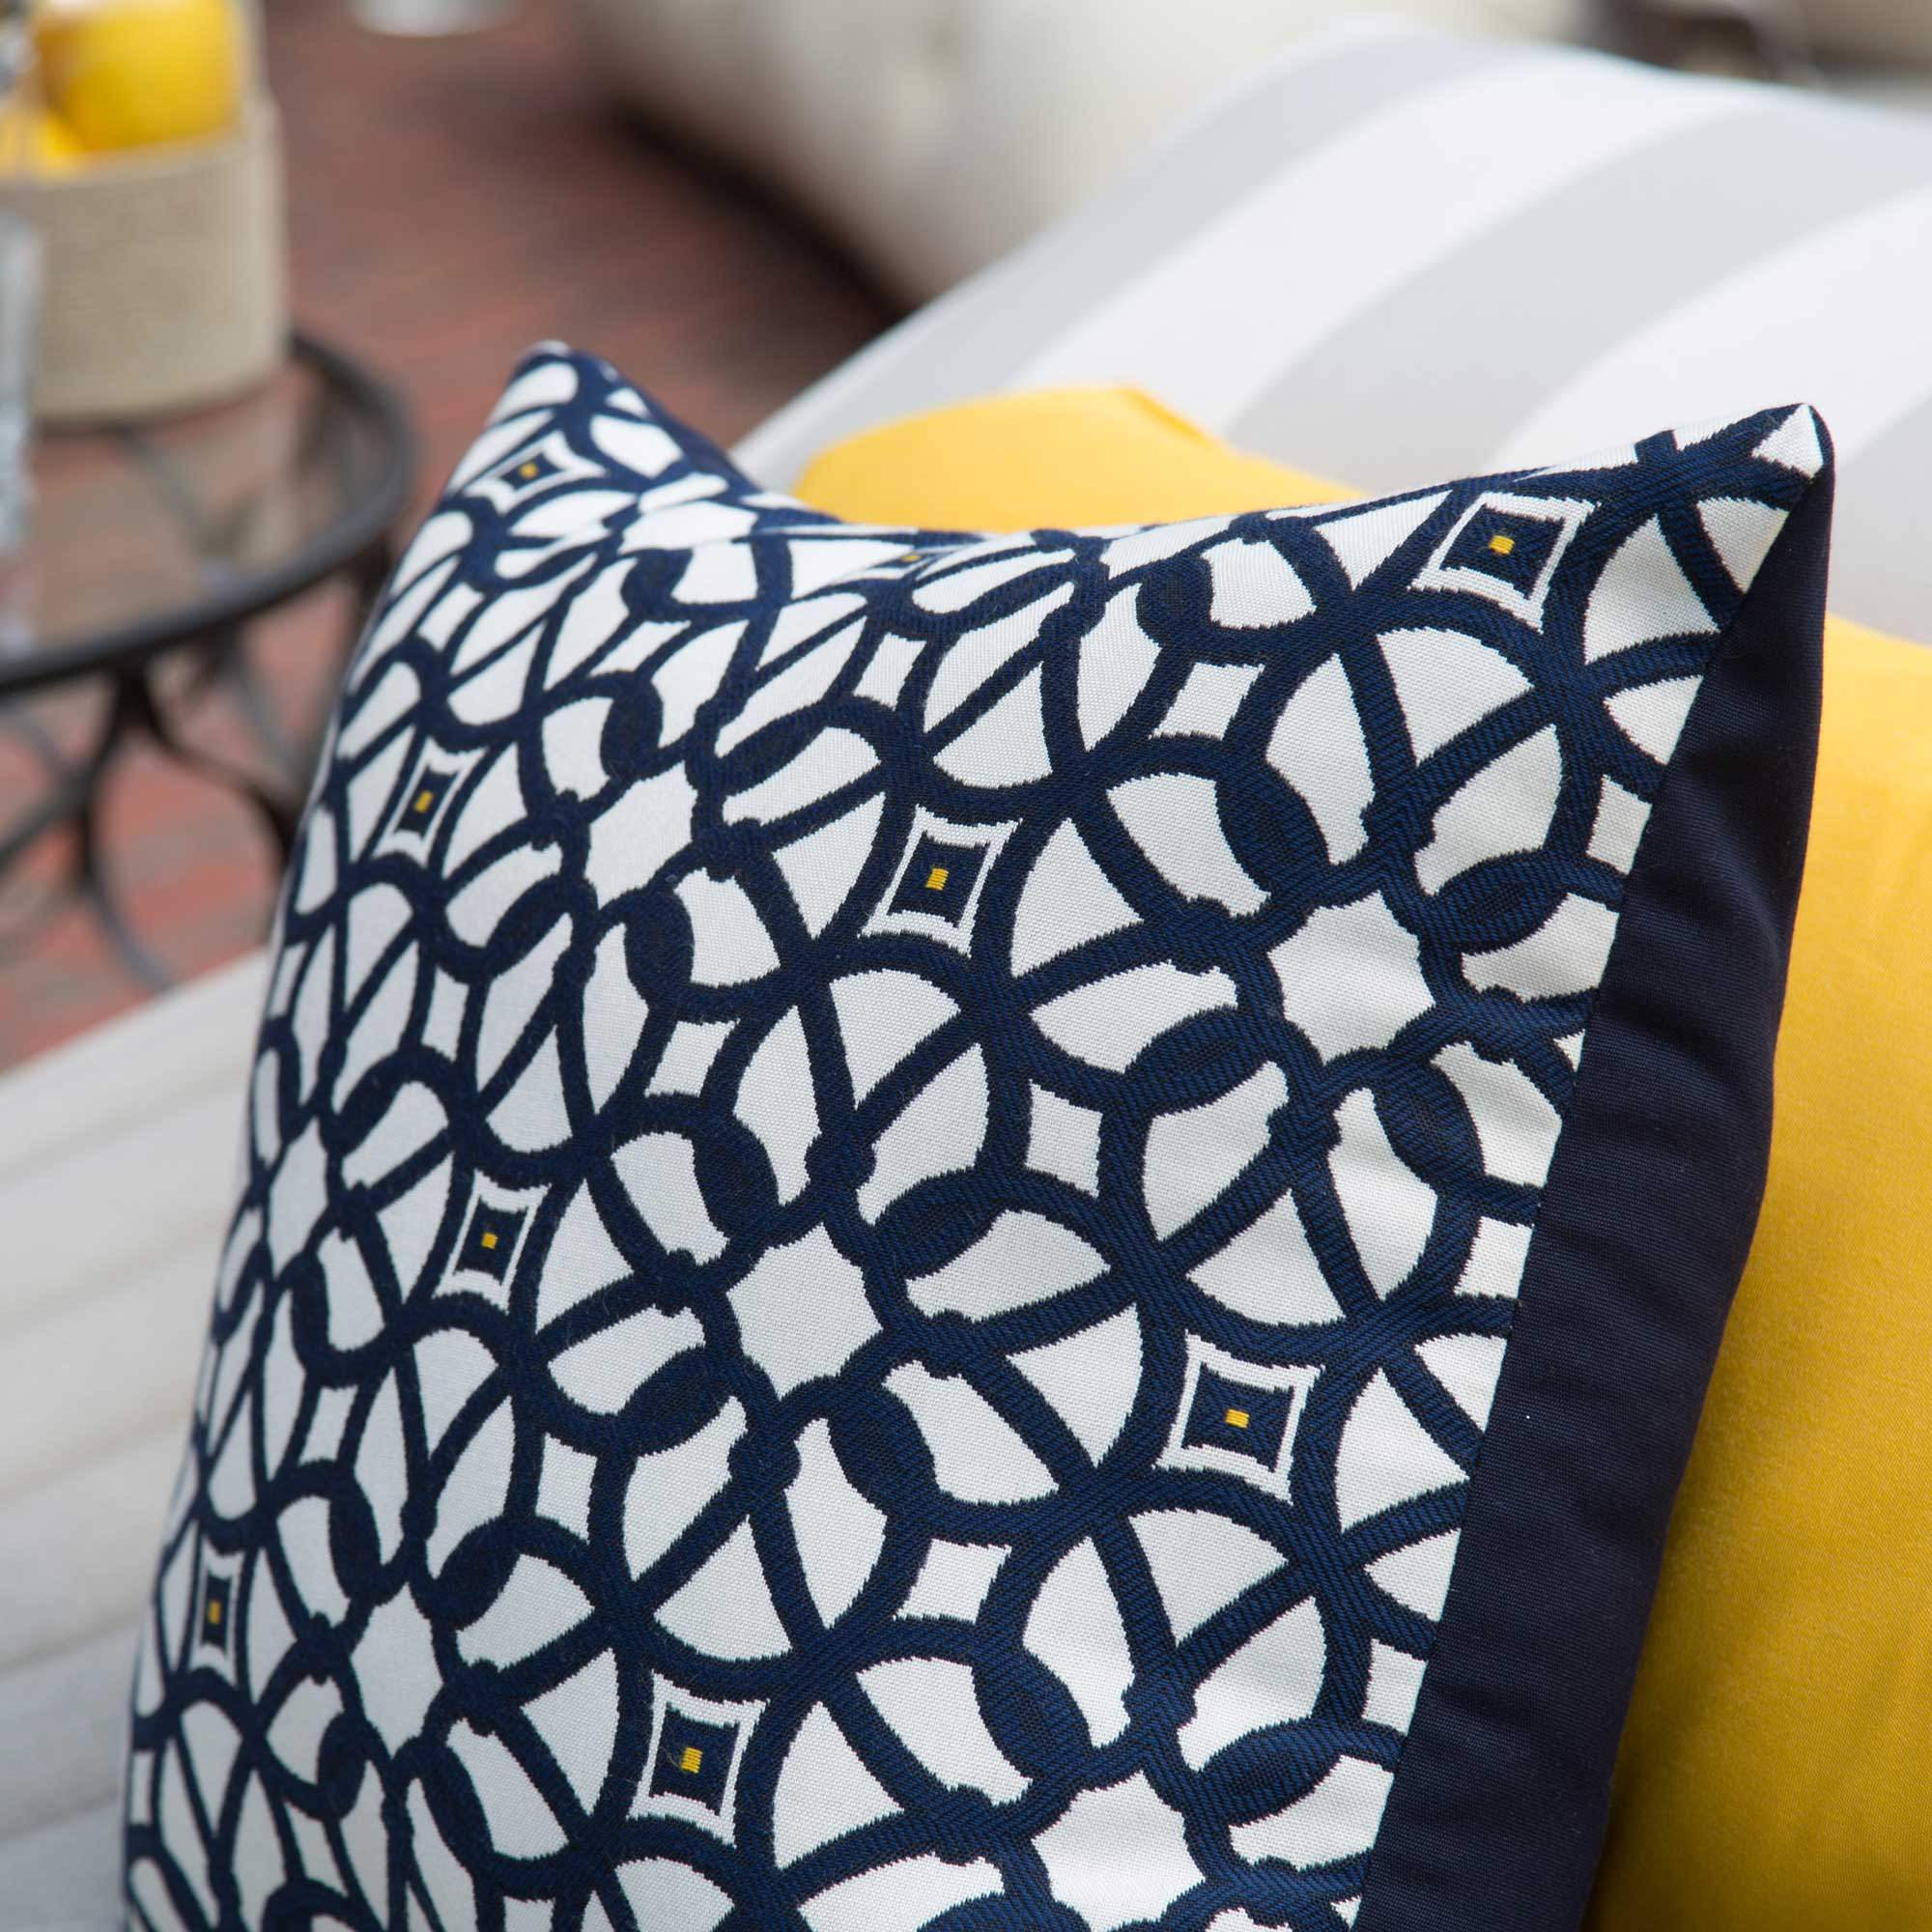 luxe indigo sunbrella designer porch pillow luxe indigo sunbrella outdoor throw pillows on sale  rh   hatterashammocks